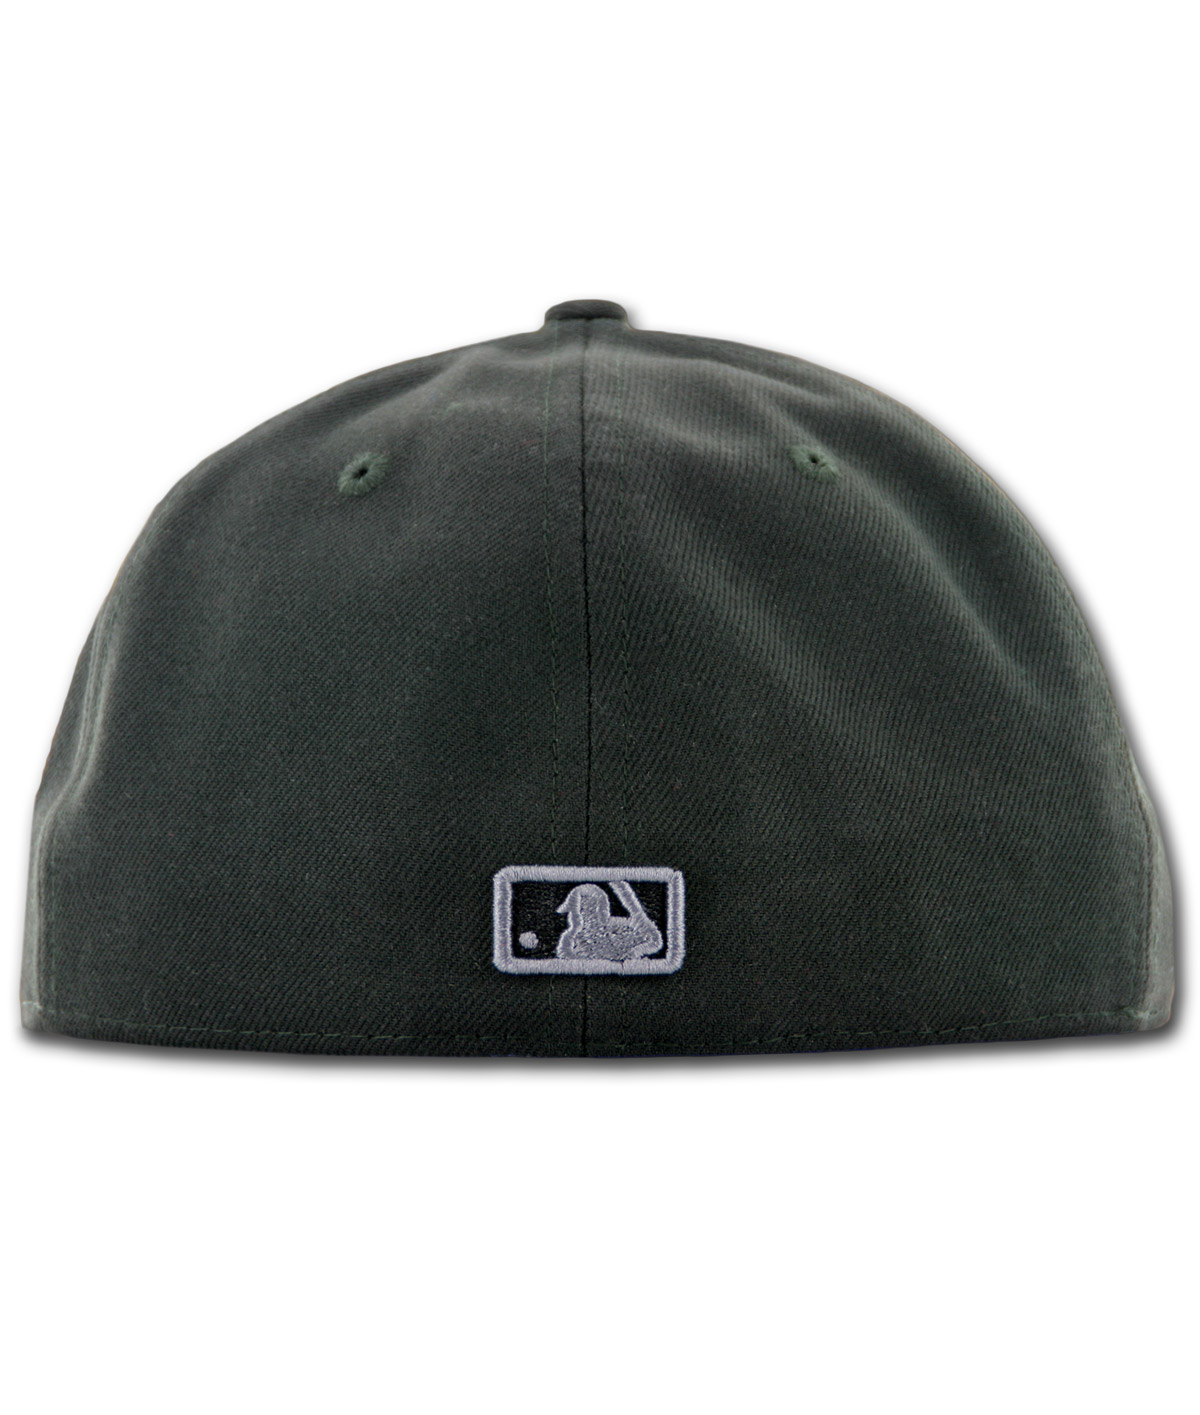 4f5a78ad9293b New Era 59Fifty New York Yankees Fitted Black